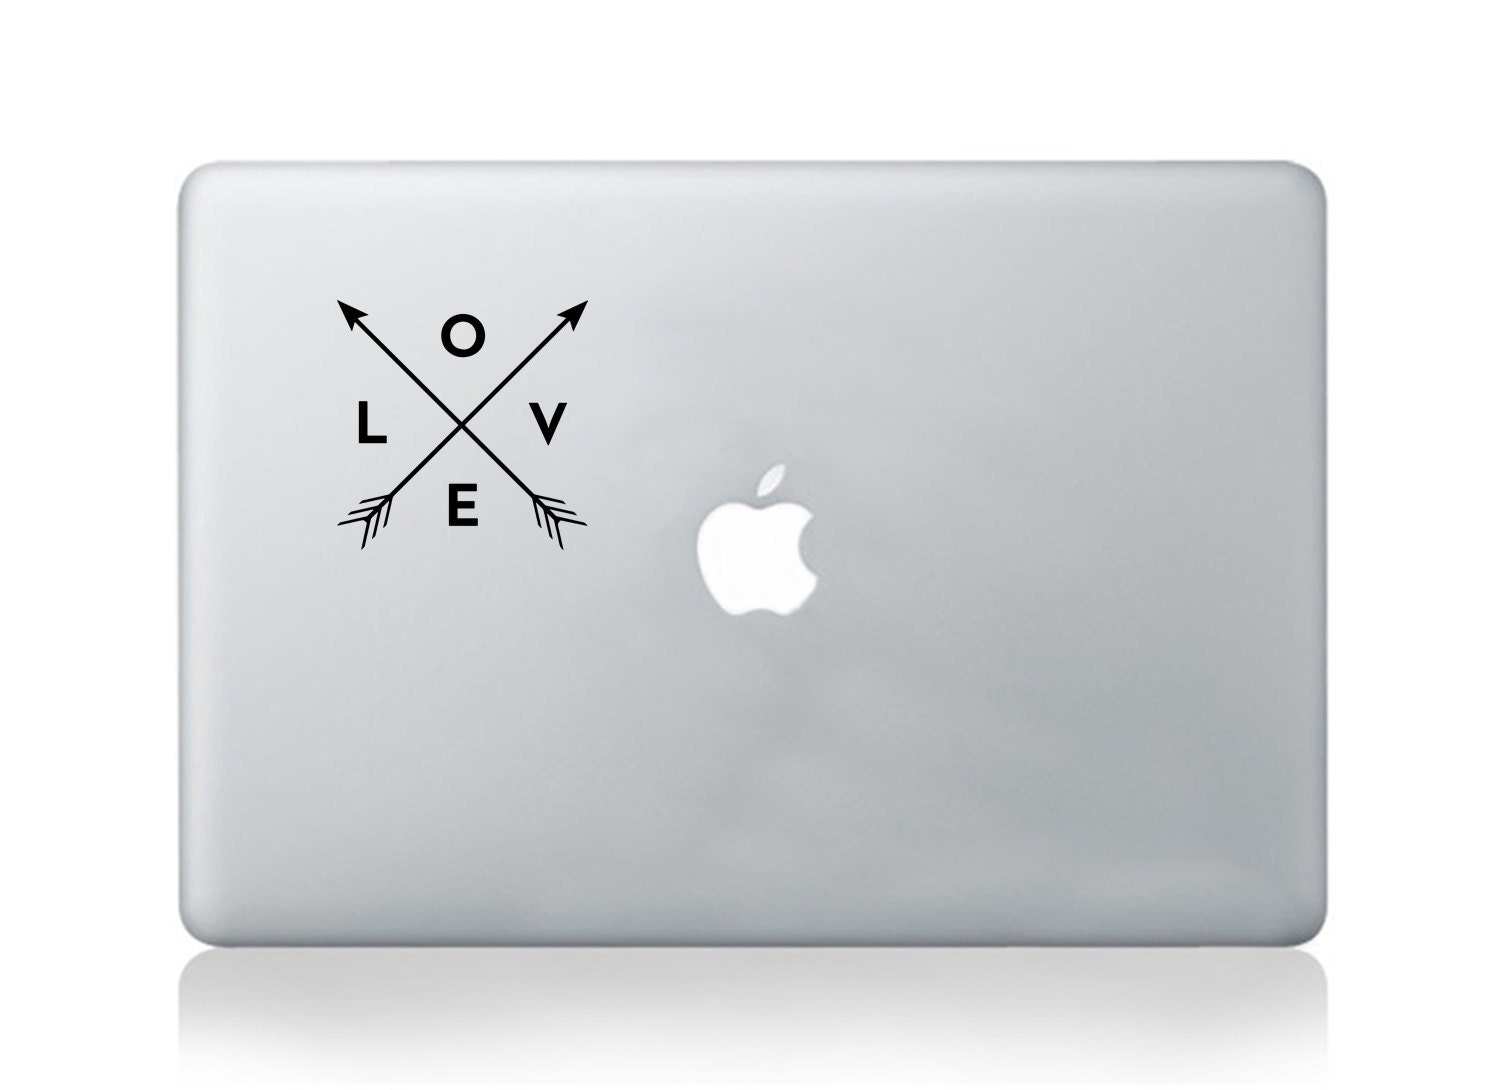 Macbook quote vinyl sticker decal love sicker transfer graphic art laptop notebook skin Asus HP Toshiba Dell decal